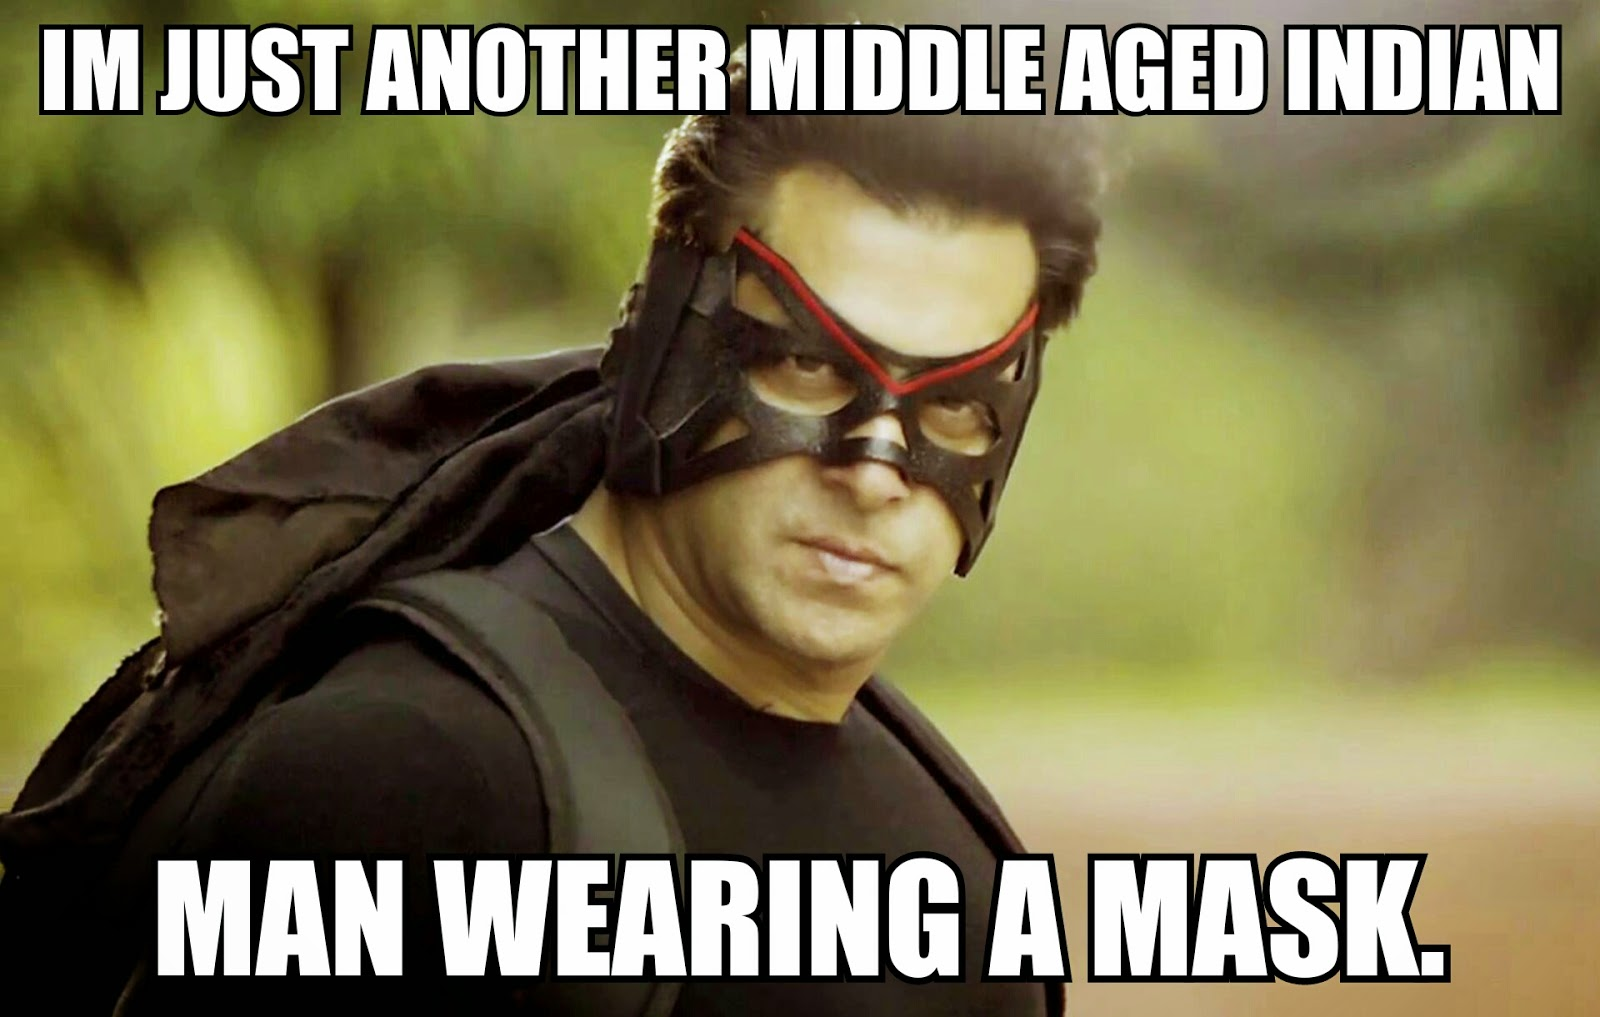 Salman Khan Superhero Kick Mask Black Bollywood Meme Funny